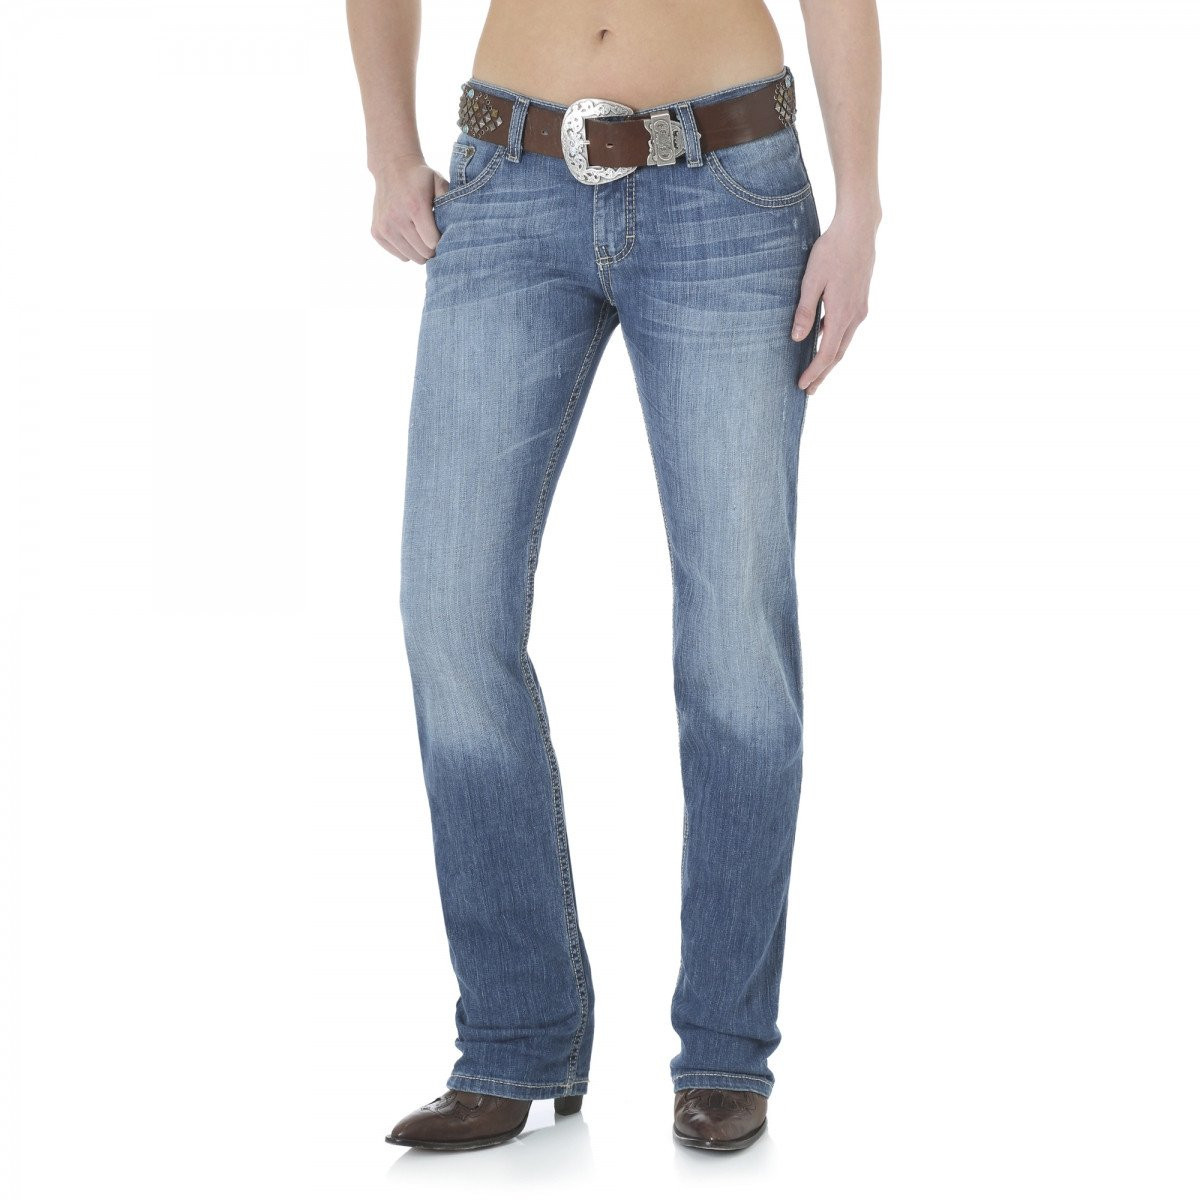 Джинсы Wrangler Rock 47 Boyfriend, Dusty Treasure*Уценка